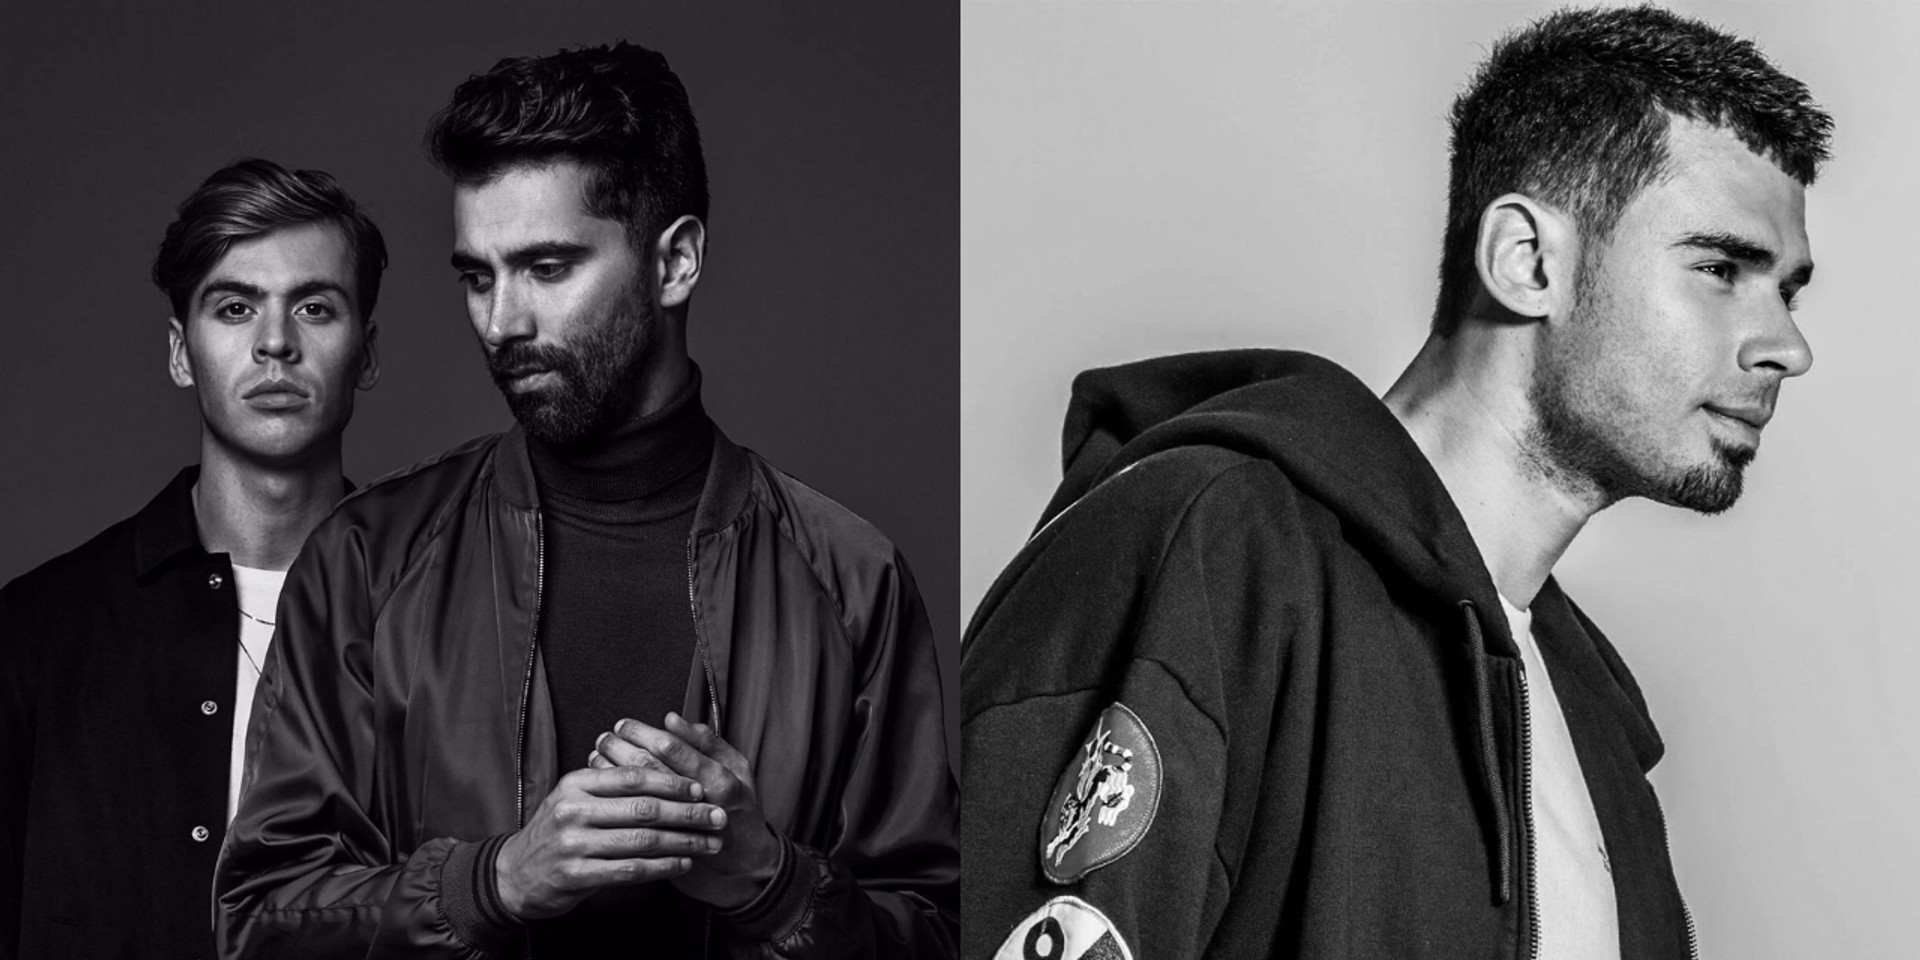 Siam Songkran Music Festival announces line-up for debut event – Yellow Claw, Afrojack and more